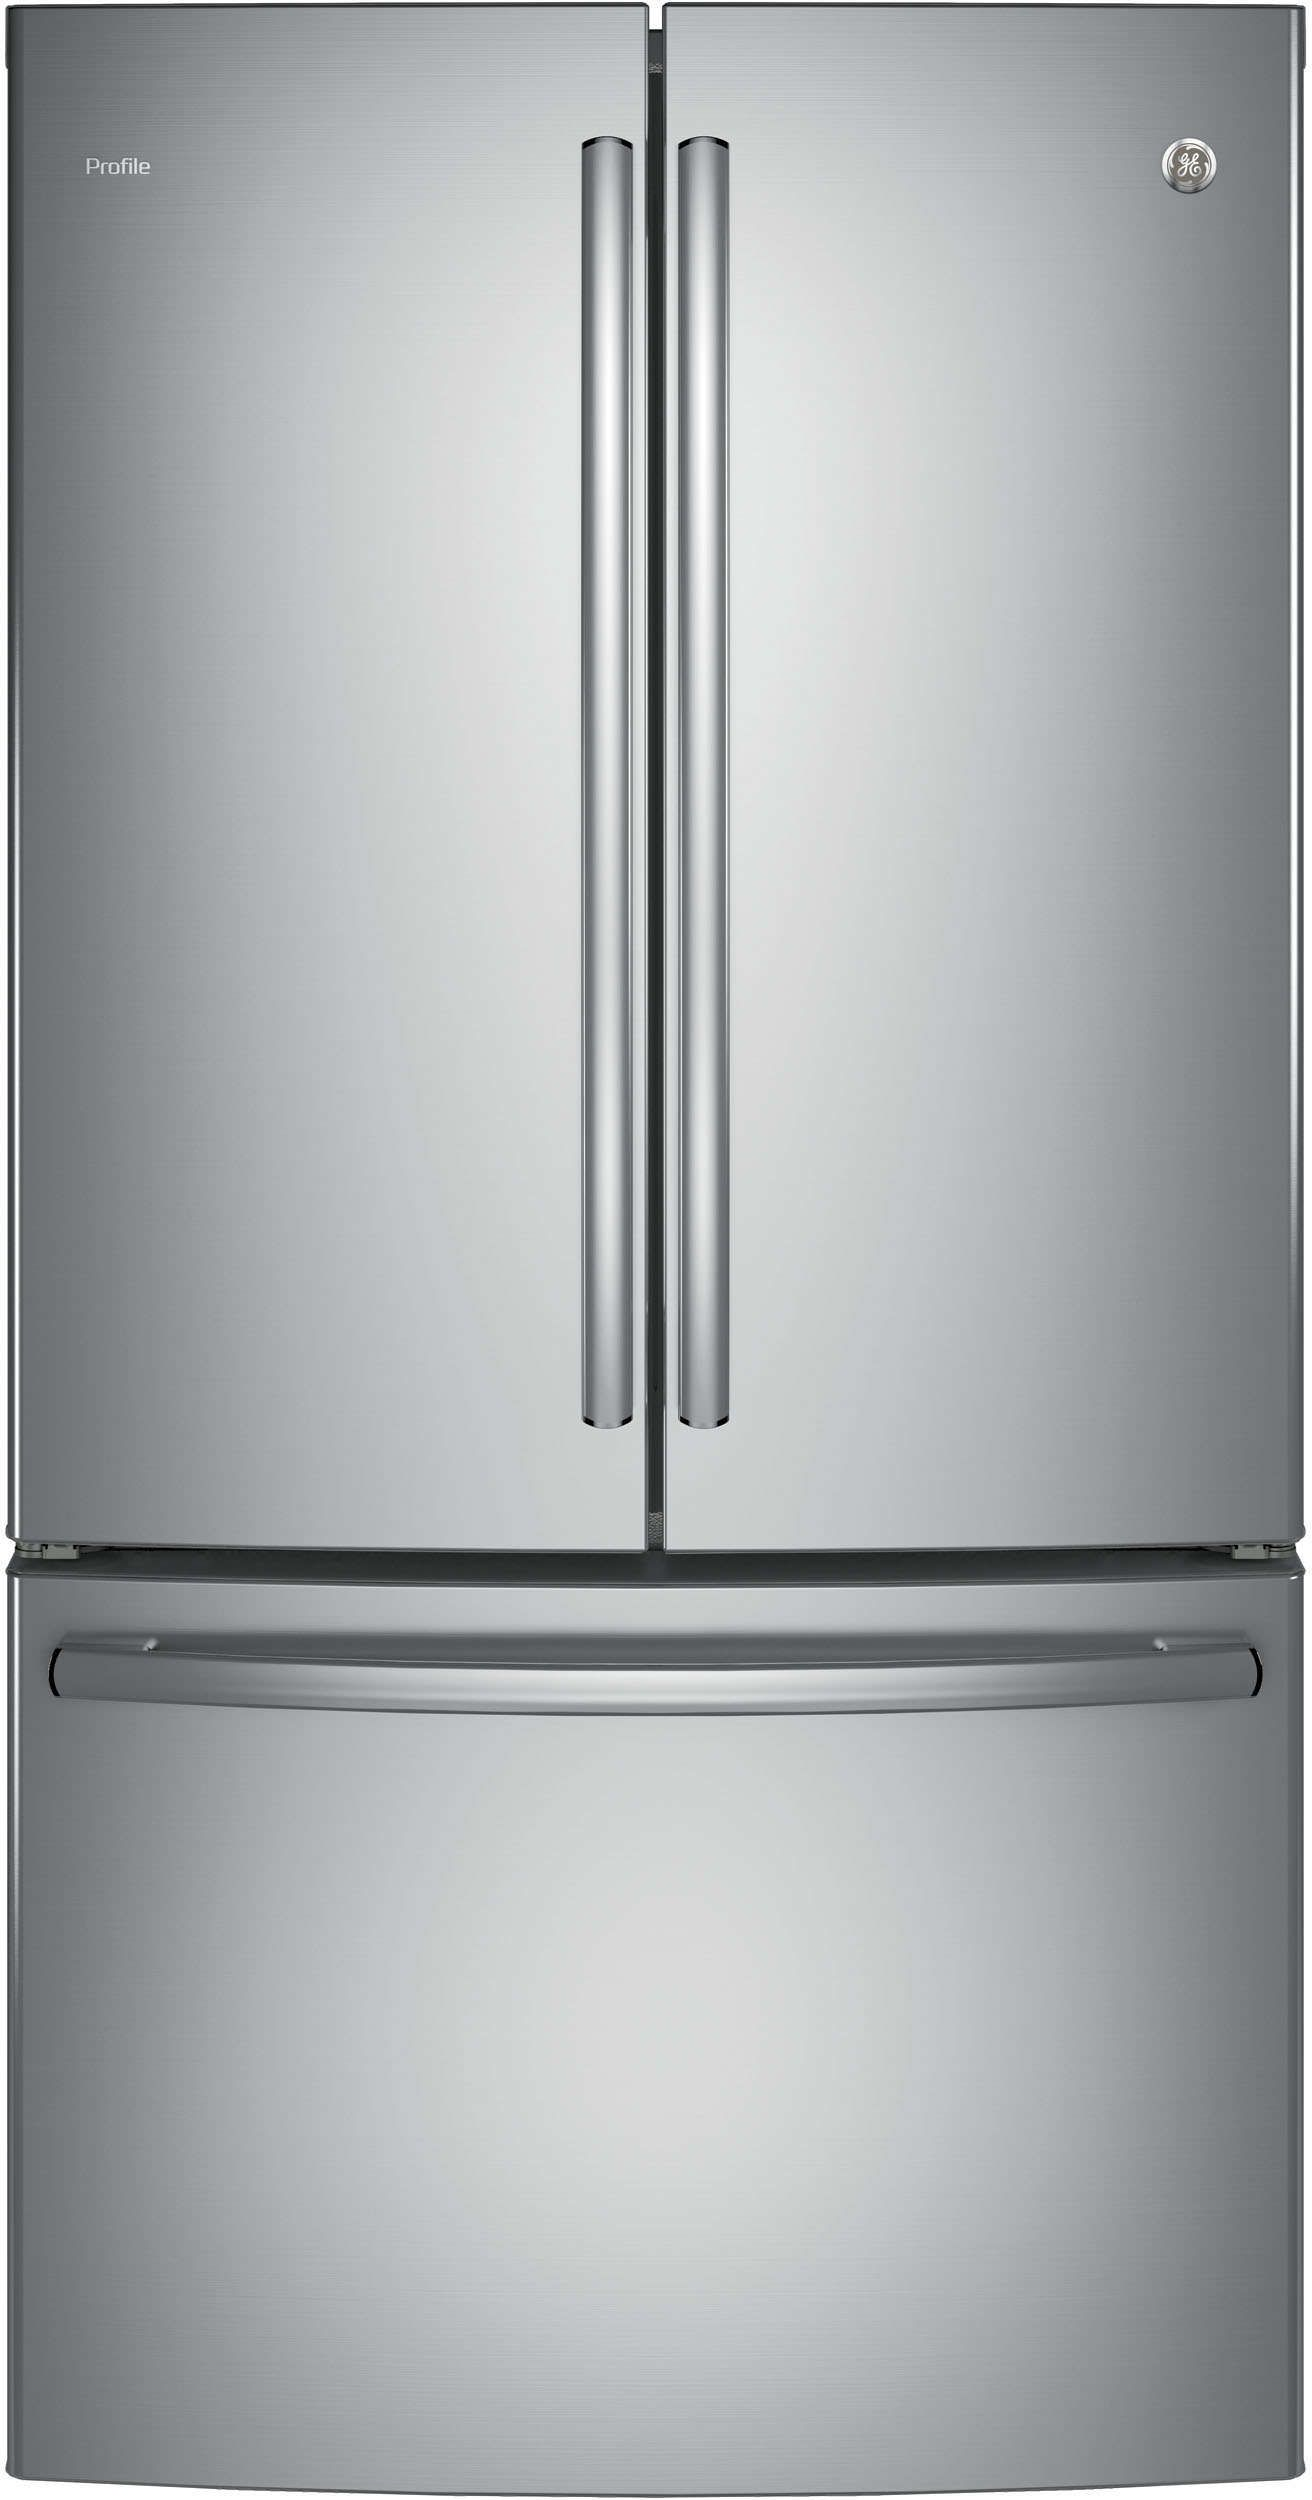 Ge Profile Pwe23kskss 36 French Door Refrigerator Buy More Save More Watch You Counter Depth French Door Refrigerator French Door Refrigerator French Doors